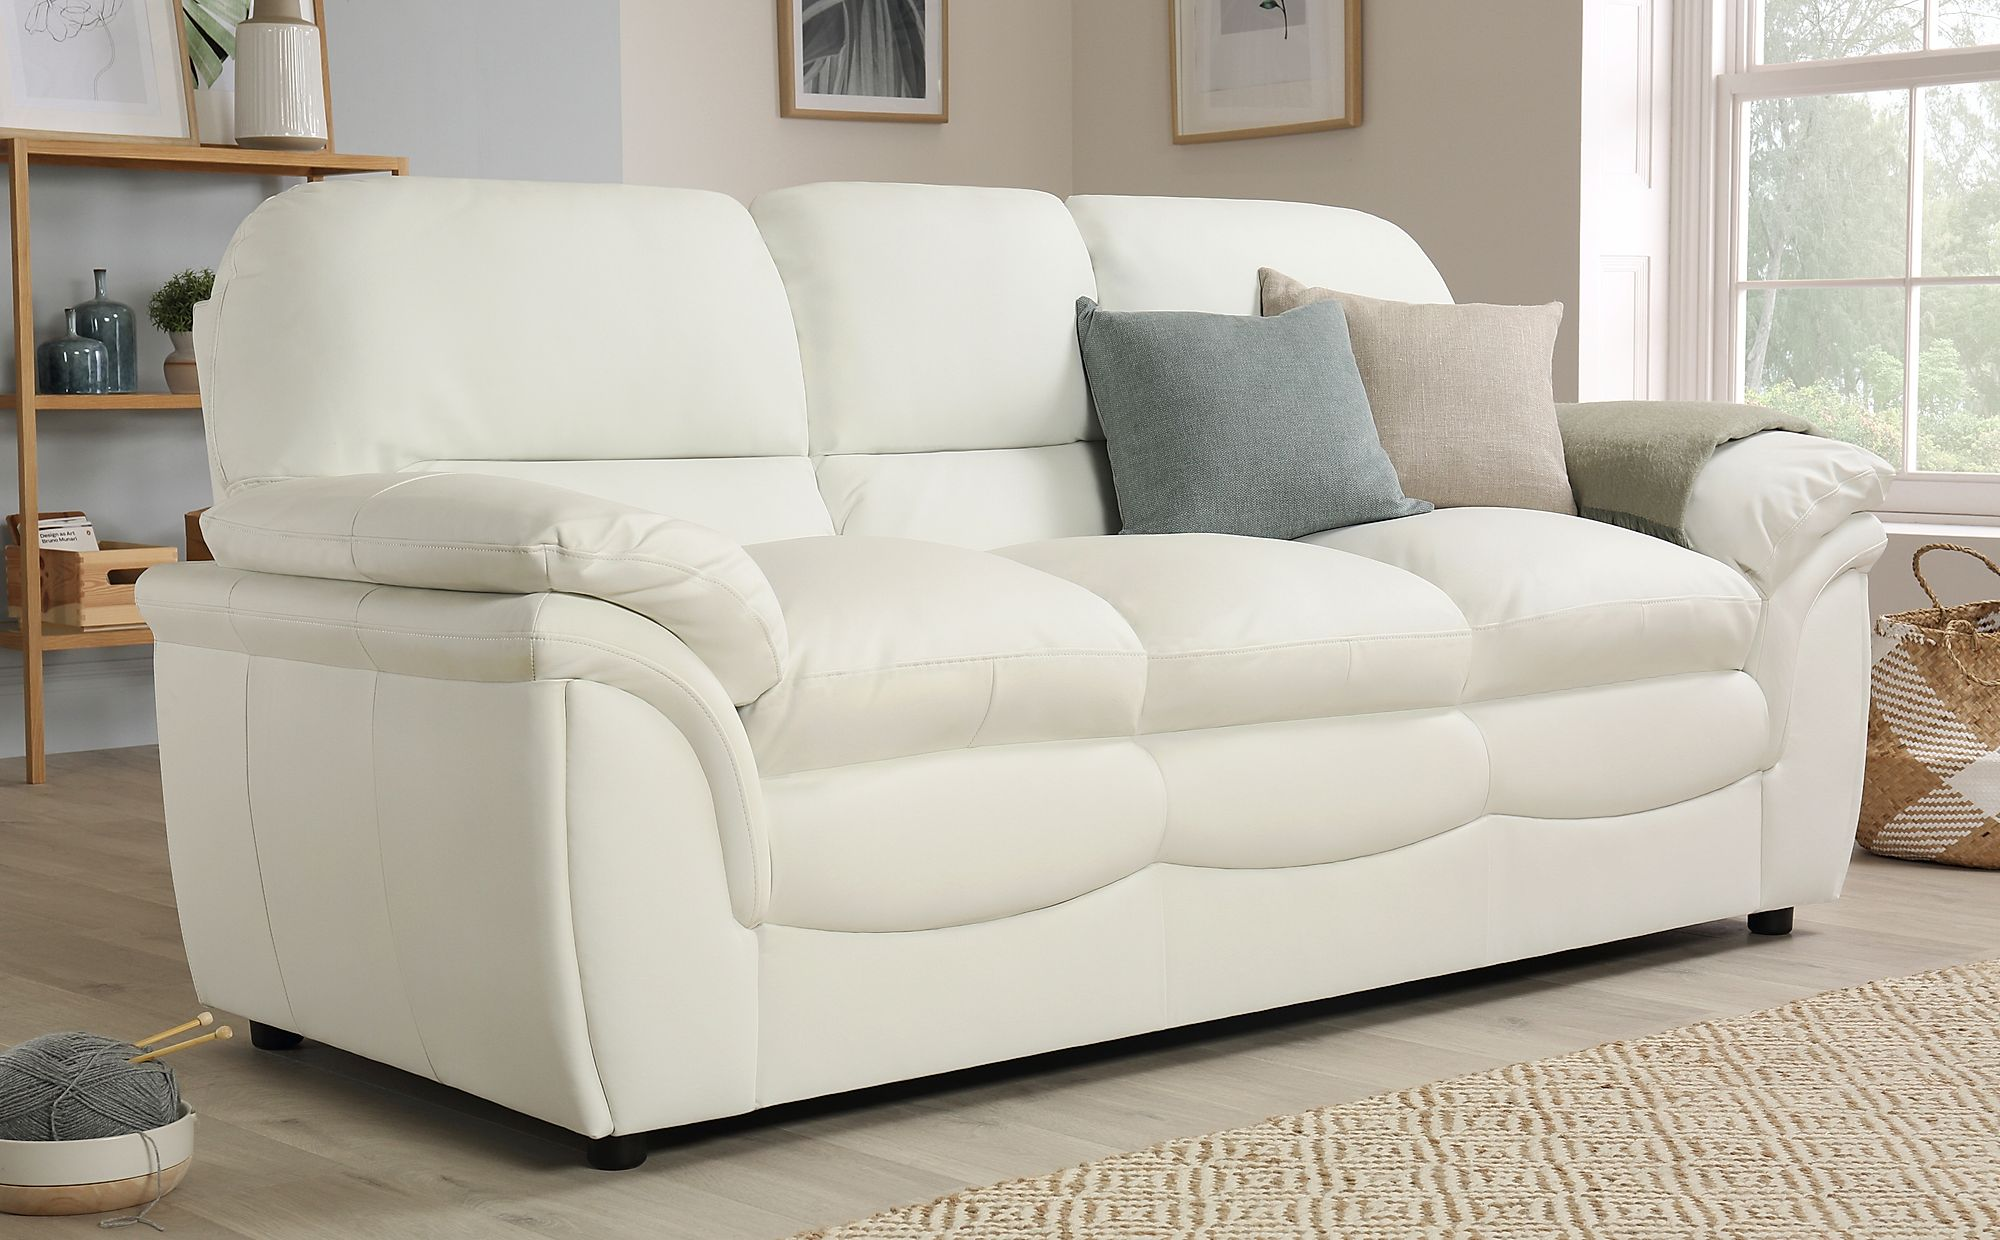 ROCHESTER Ivory Leather Sofa Sofas Group Settee Unit Range ...